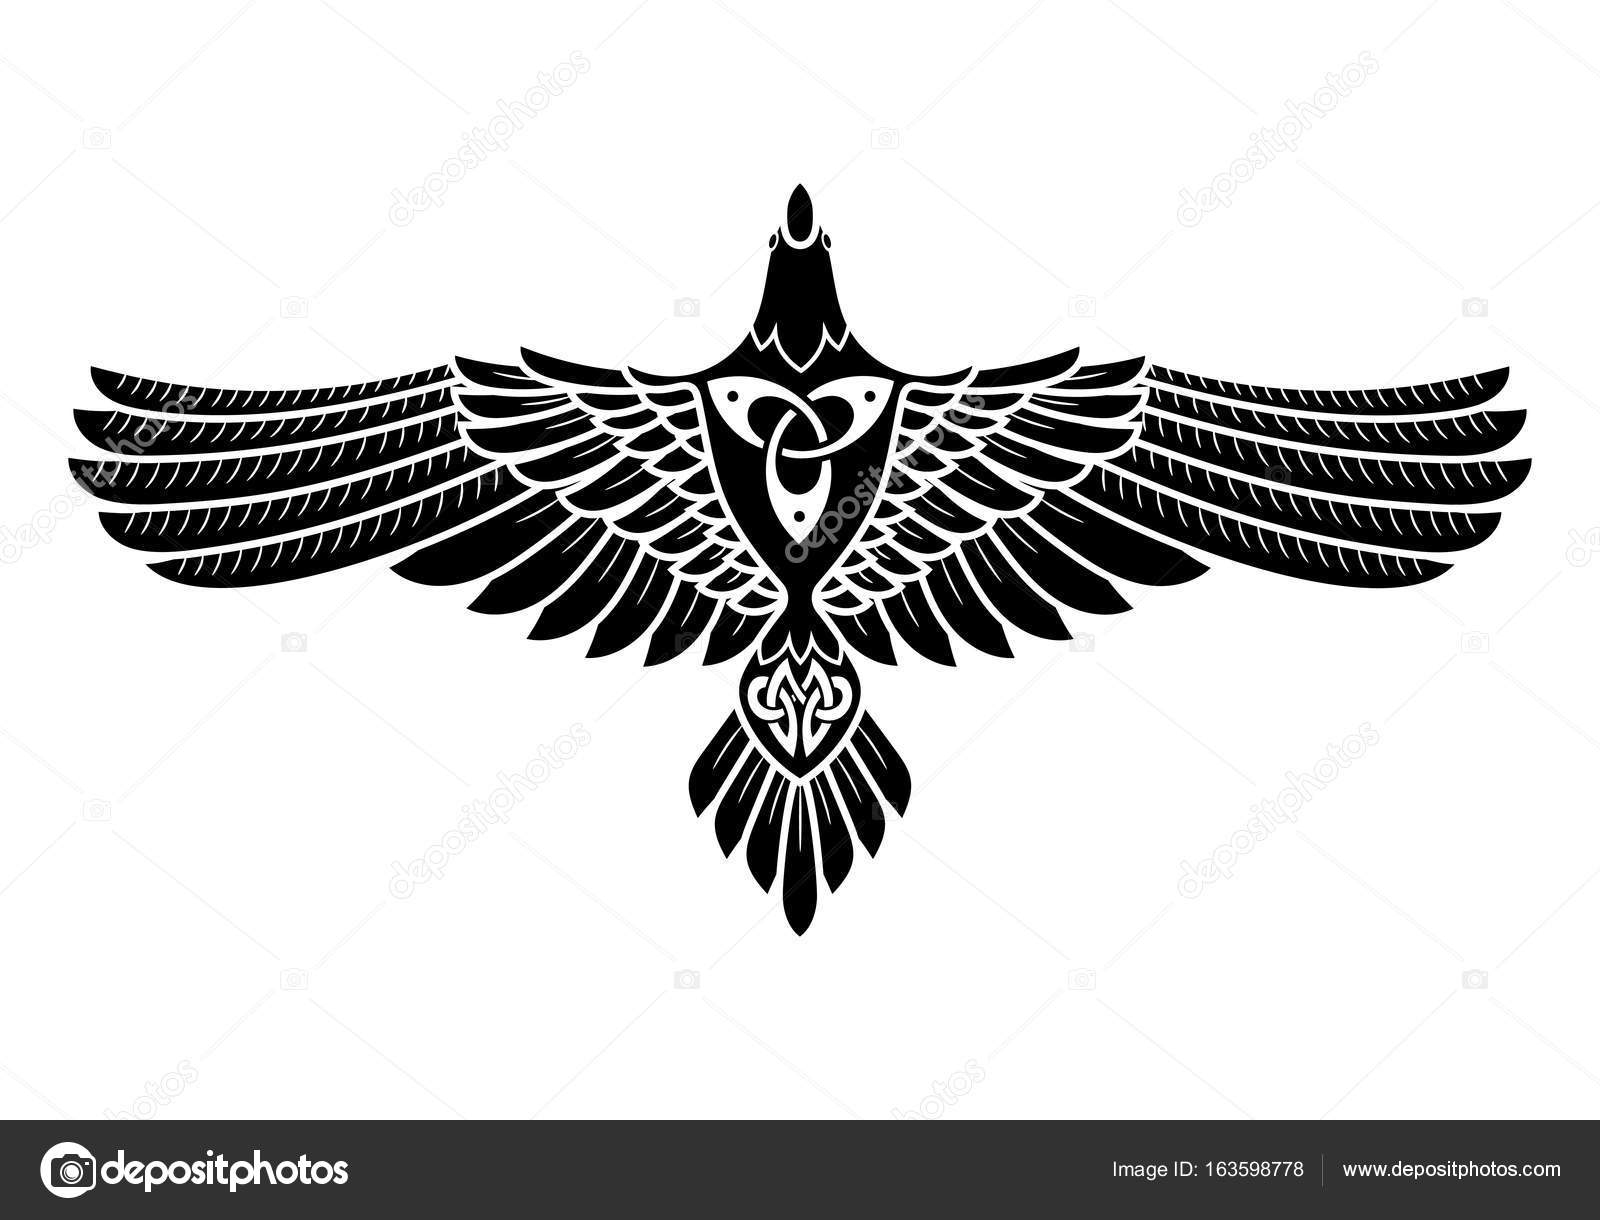 The raven of odin in norse celtic style stock vector bourbon the raven of odin in norse celtic style stock vector biocorpaavc